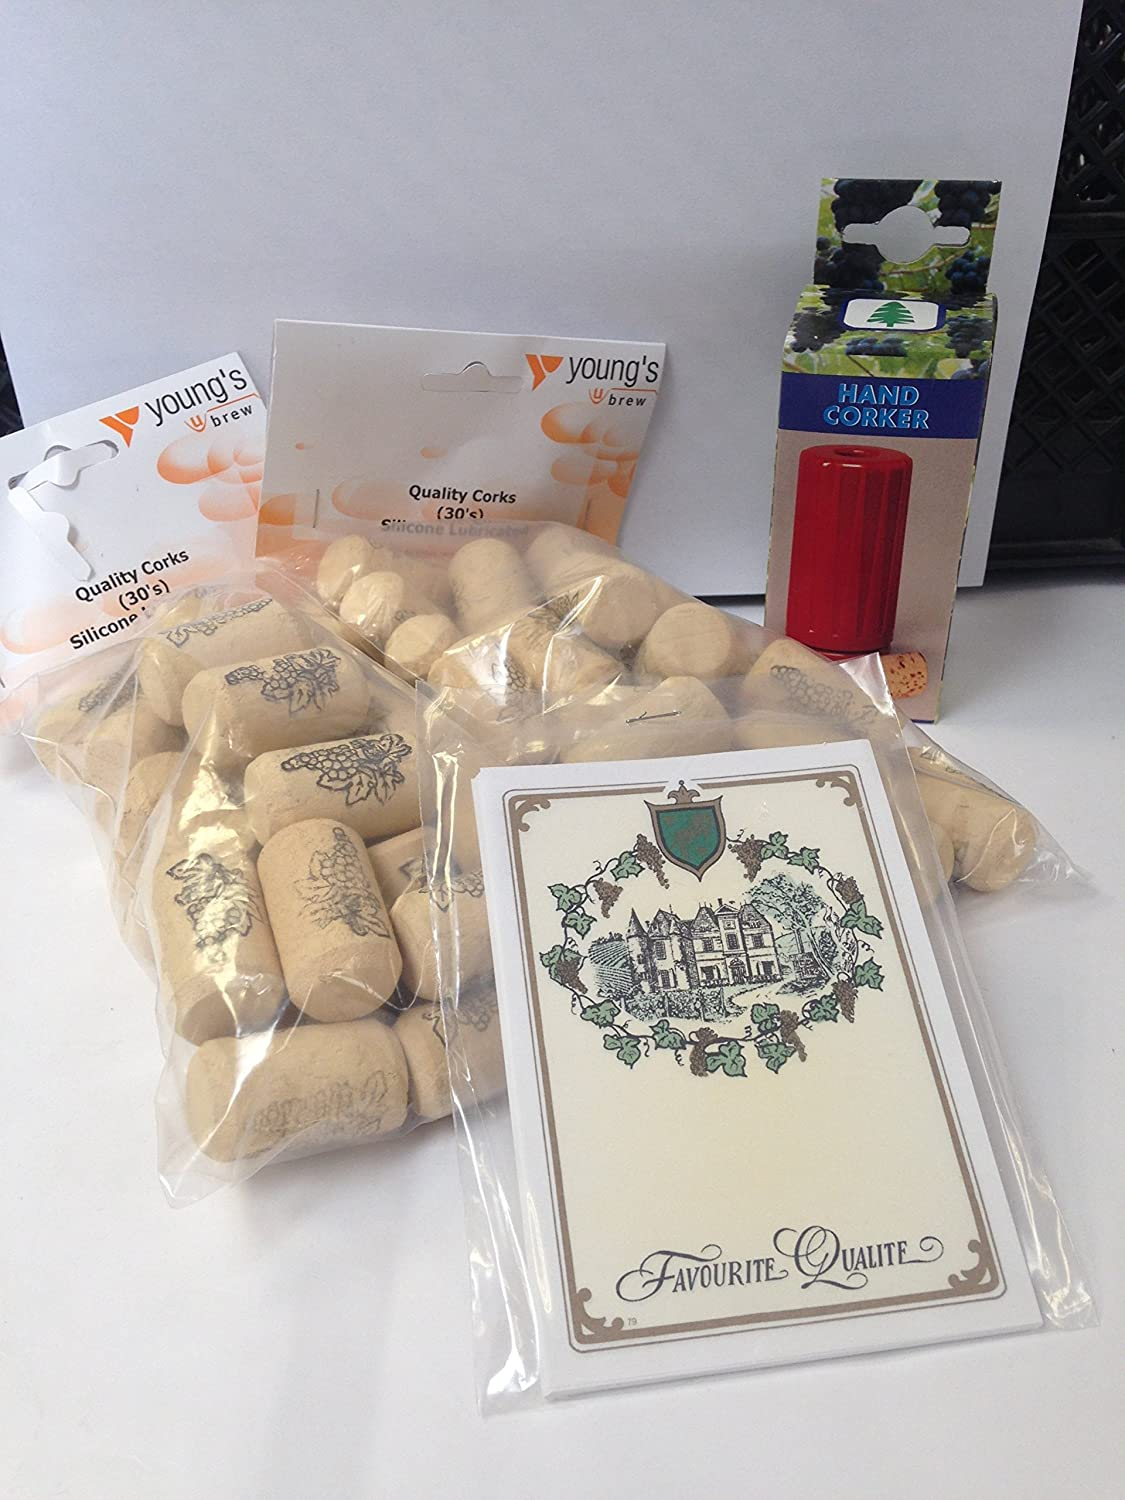 Youngs Set of 4-2 Packs of 30 Straight Wine Silicone Treated Corks /& No 79 Wine Labels /& Hand Corker